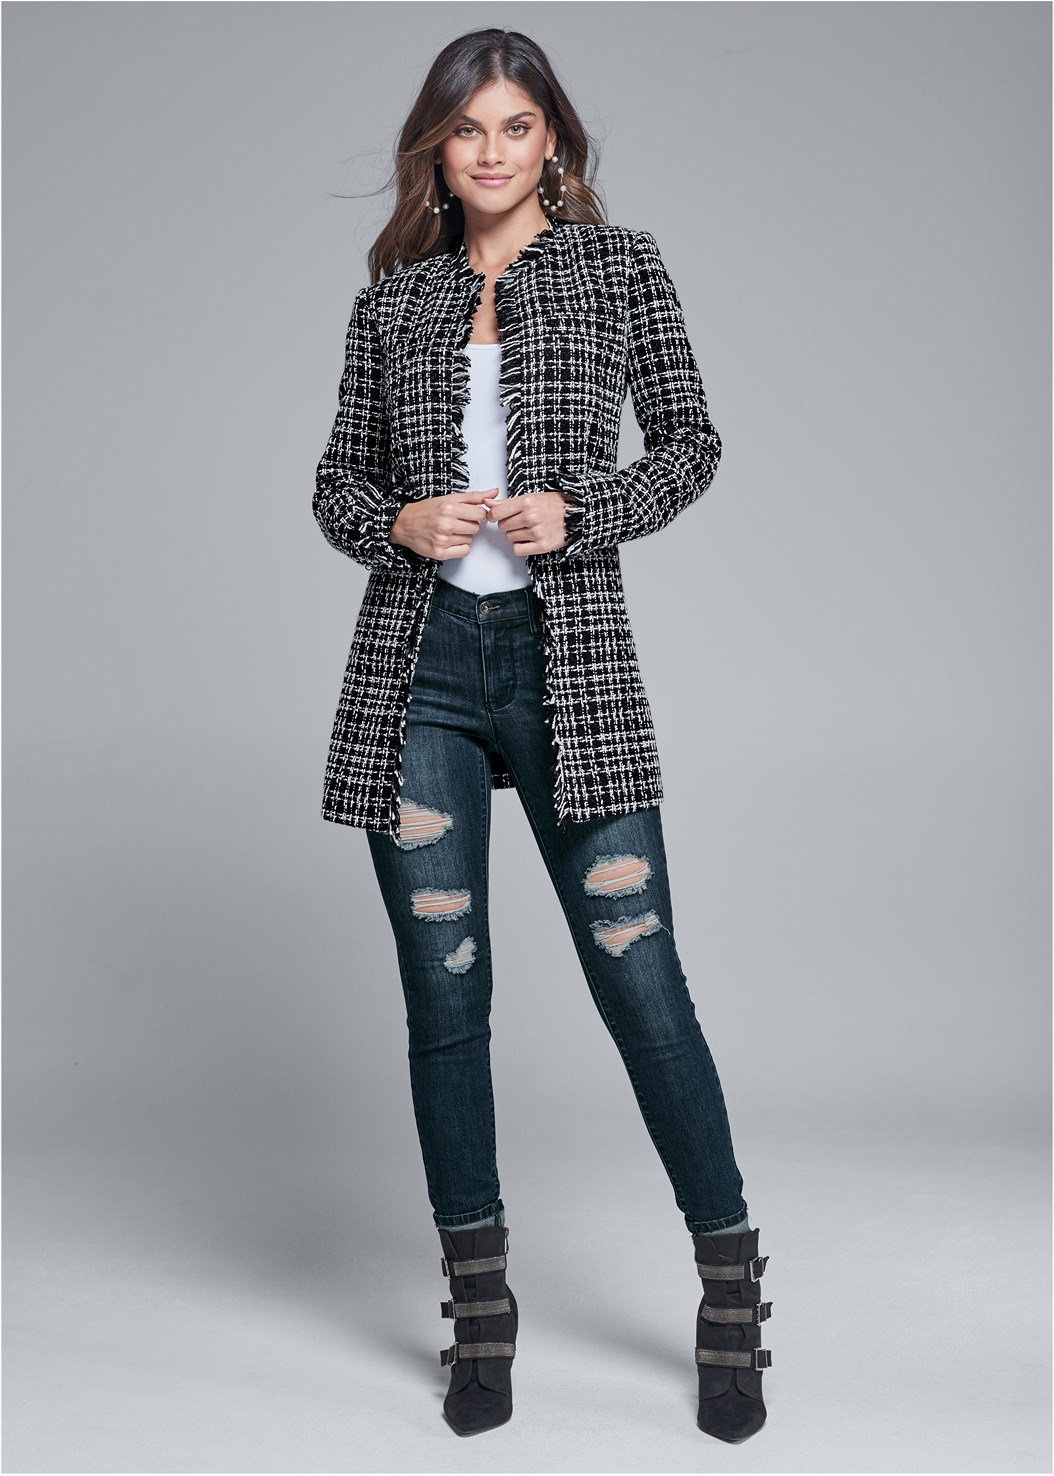 Open Front Tweed Fringe Jacket,Basic Cami Two Pack,Ripped Bum Lifter Jeans,Buckle Detail Booties,Fringe Scarf,Faux Feather Handbag,Lace Detail Bootie